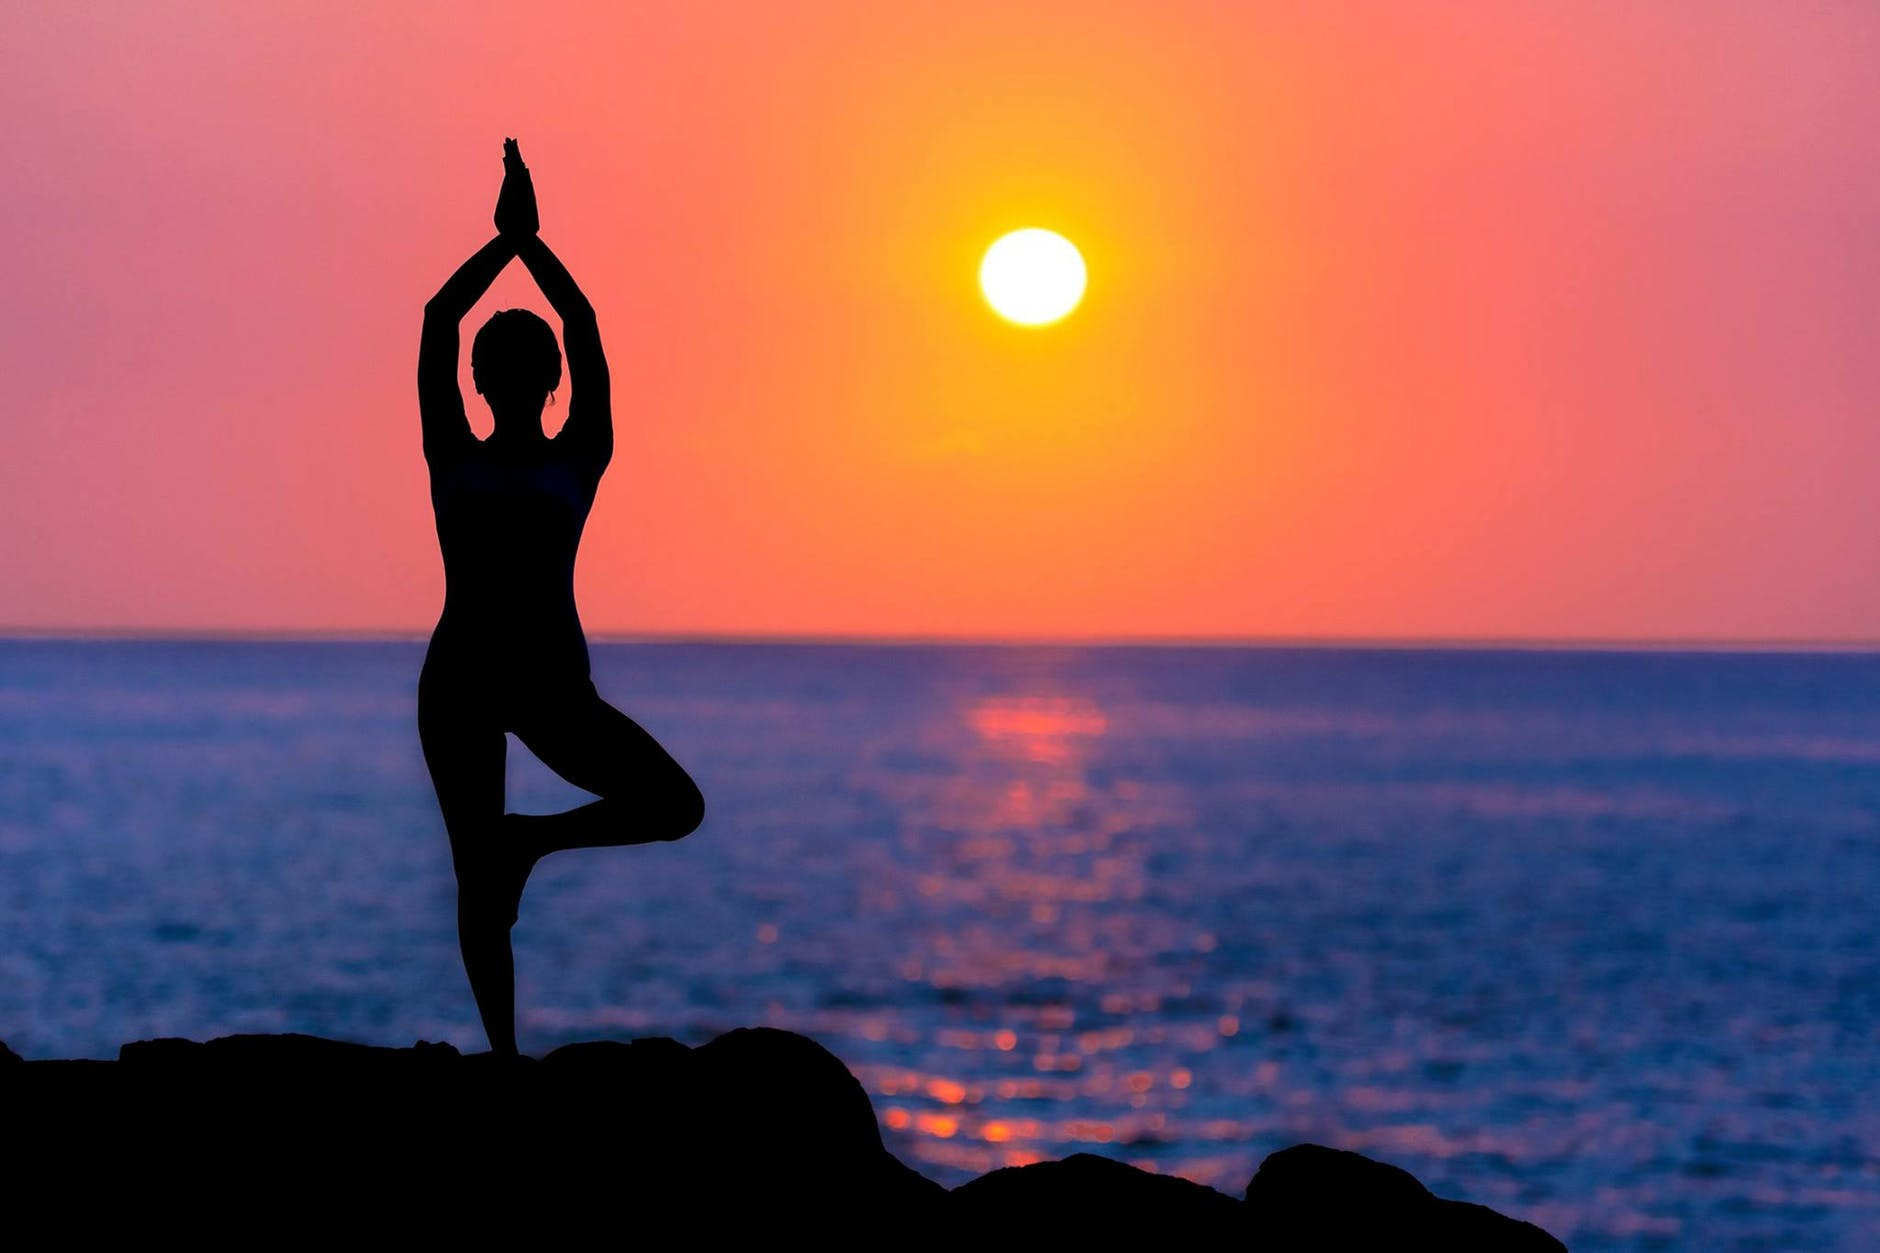 Yoga is an effective way to reduce stress, increase flexibility, and to clear your mind